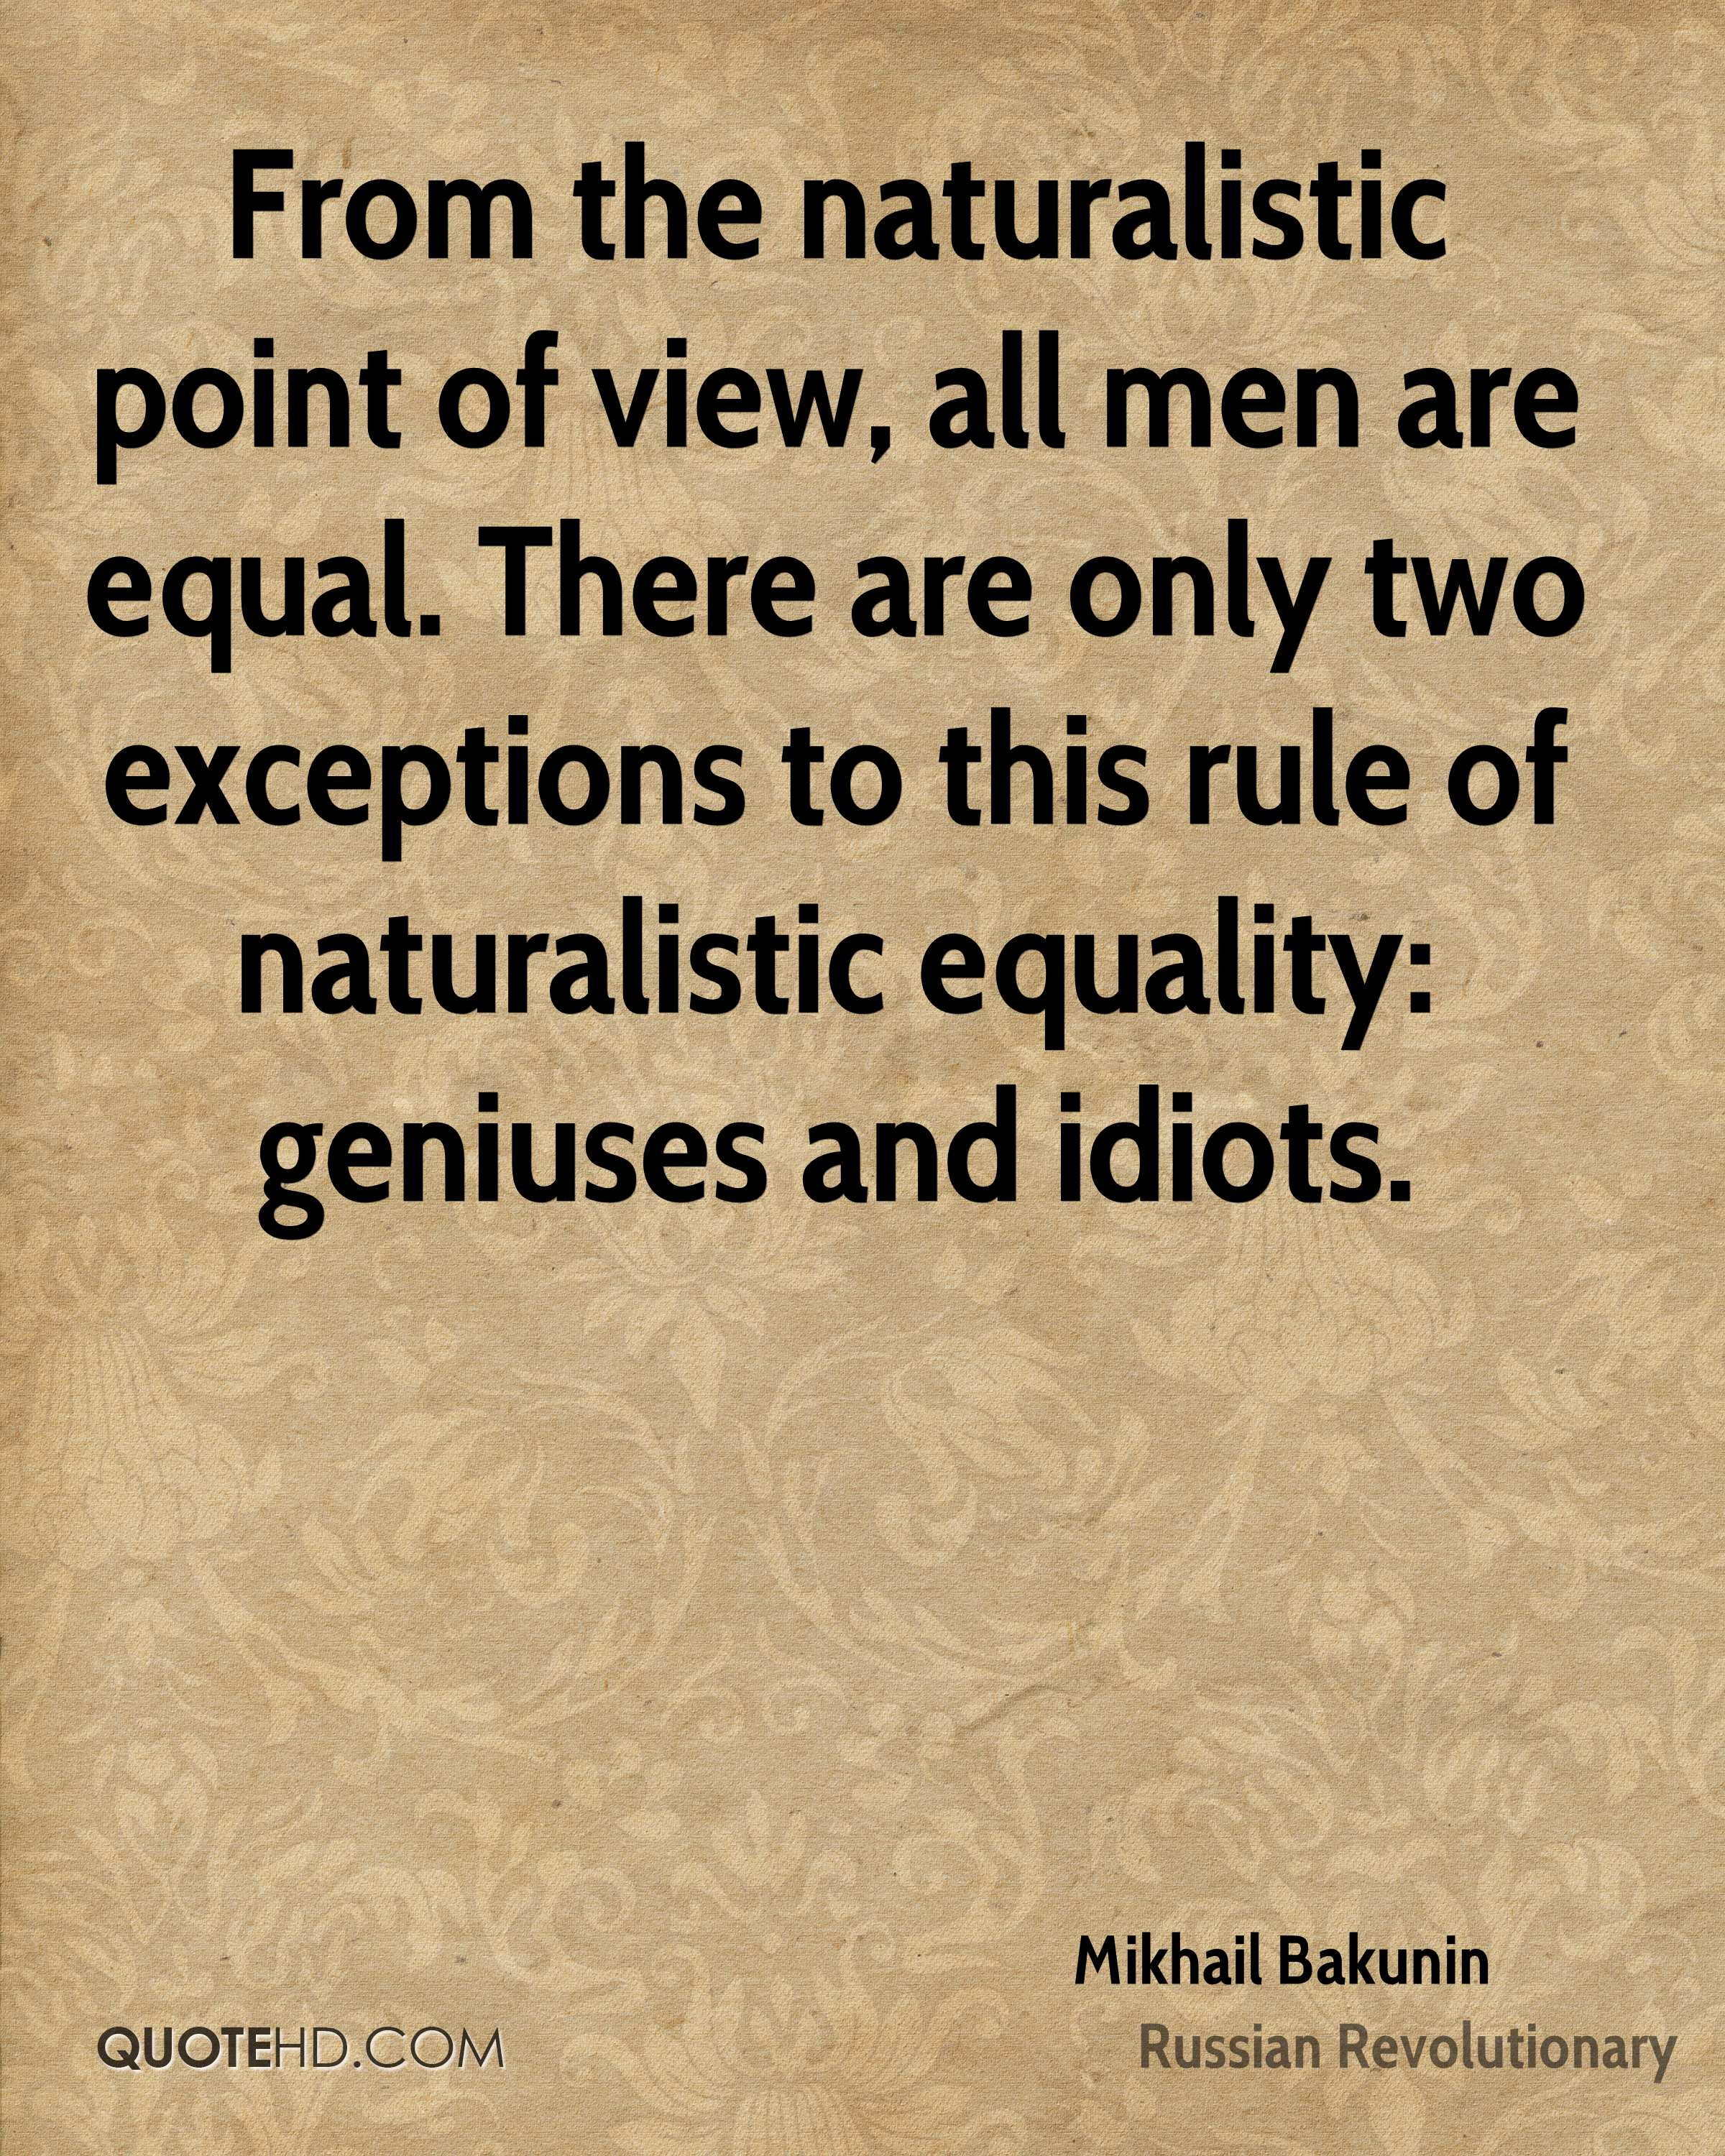 From the naturalistic point of view, all men are equal. There are only two exceptions to this rule of naturalistic equality: geniuses and idiots.